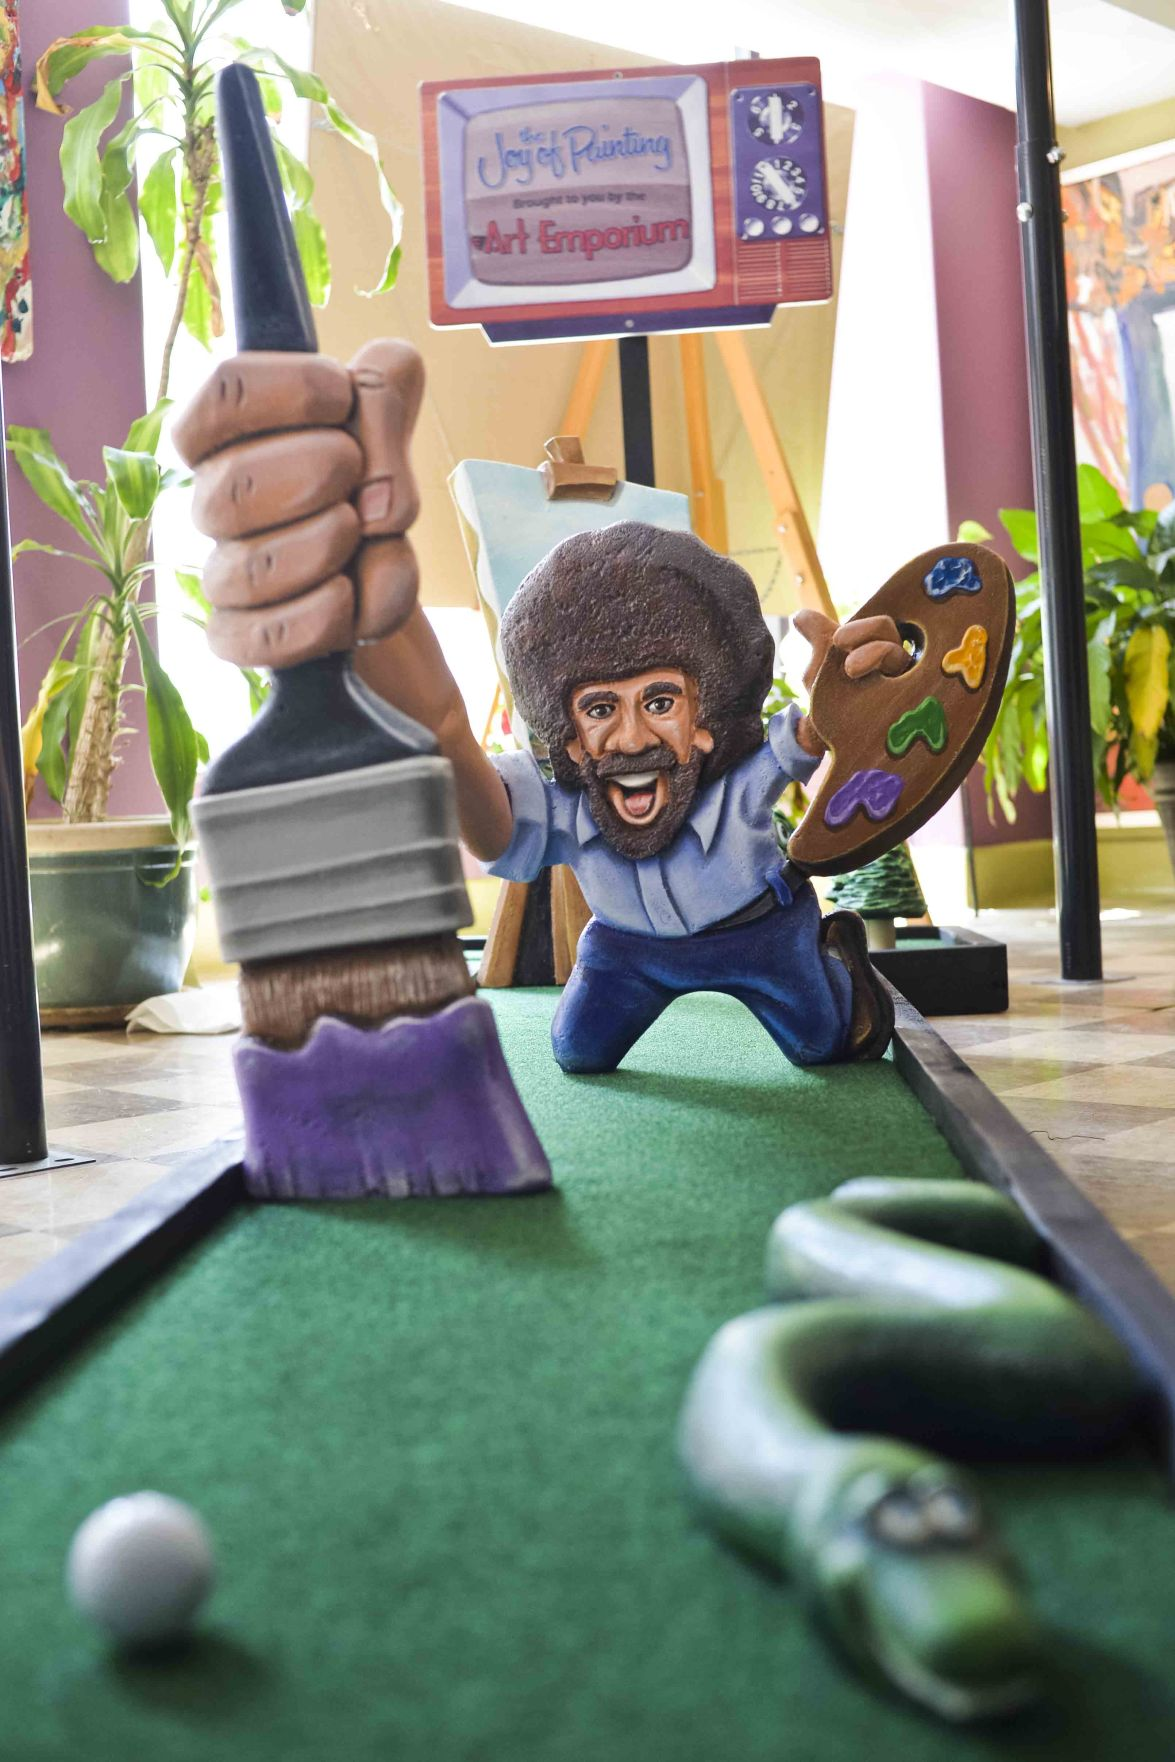 Golf around town: Pop-up course launches in downtown Charleston